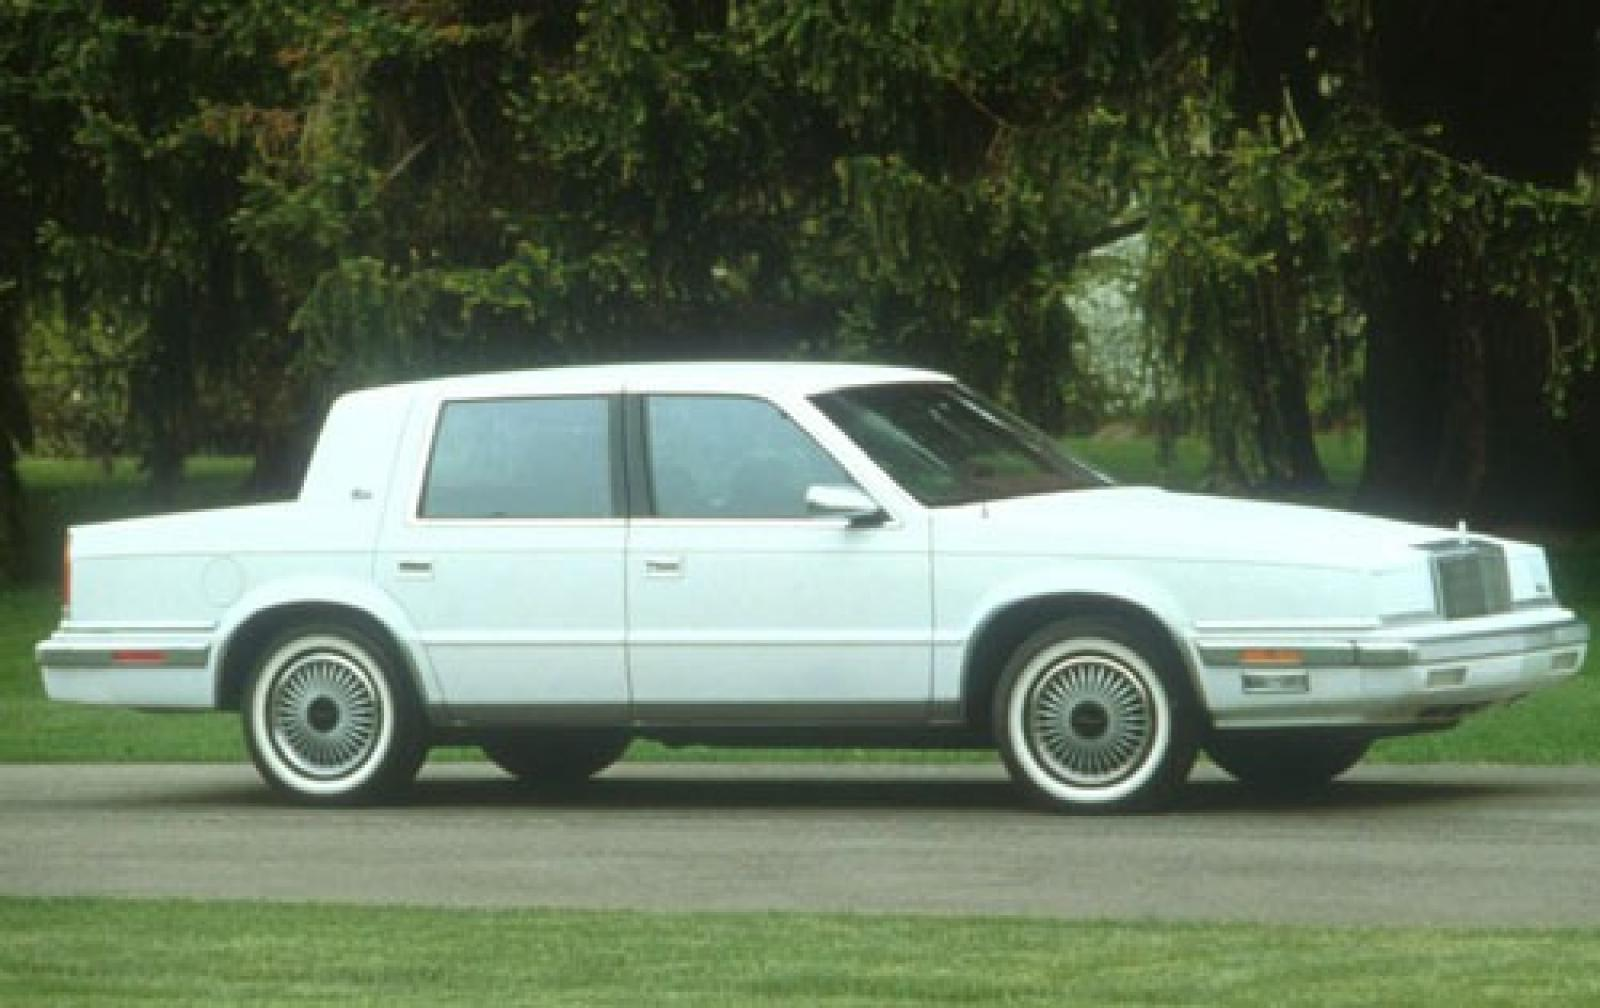 1990 chrysler new yorker information and photos for 1993 chrysler new yorker salon